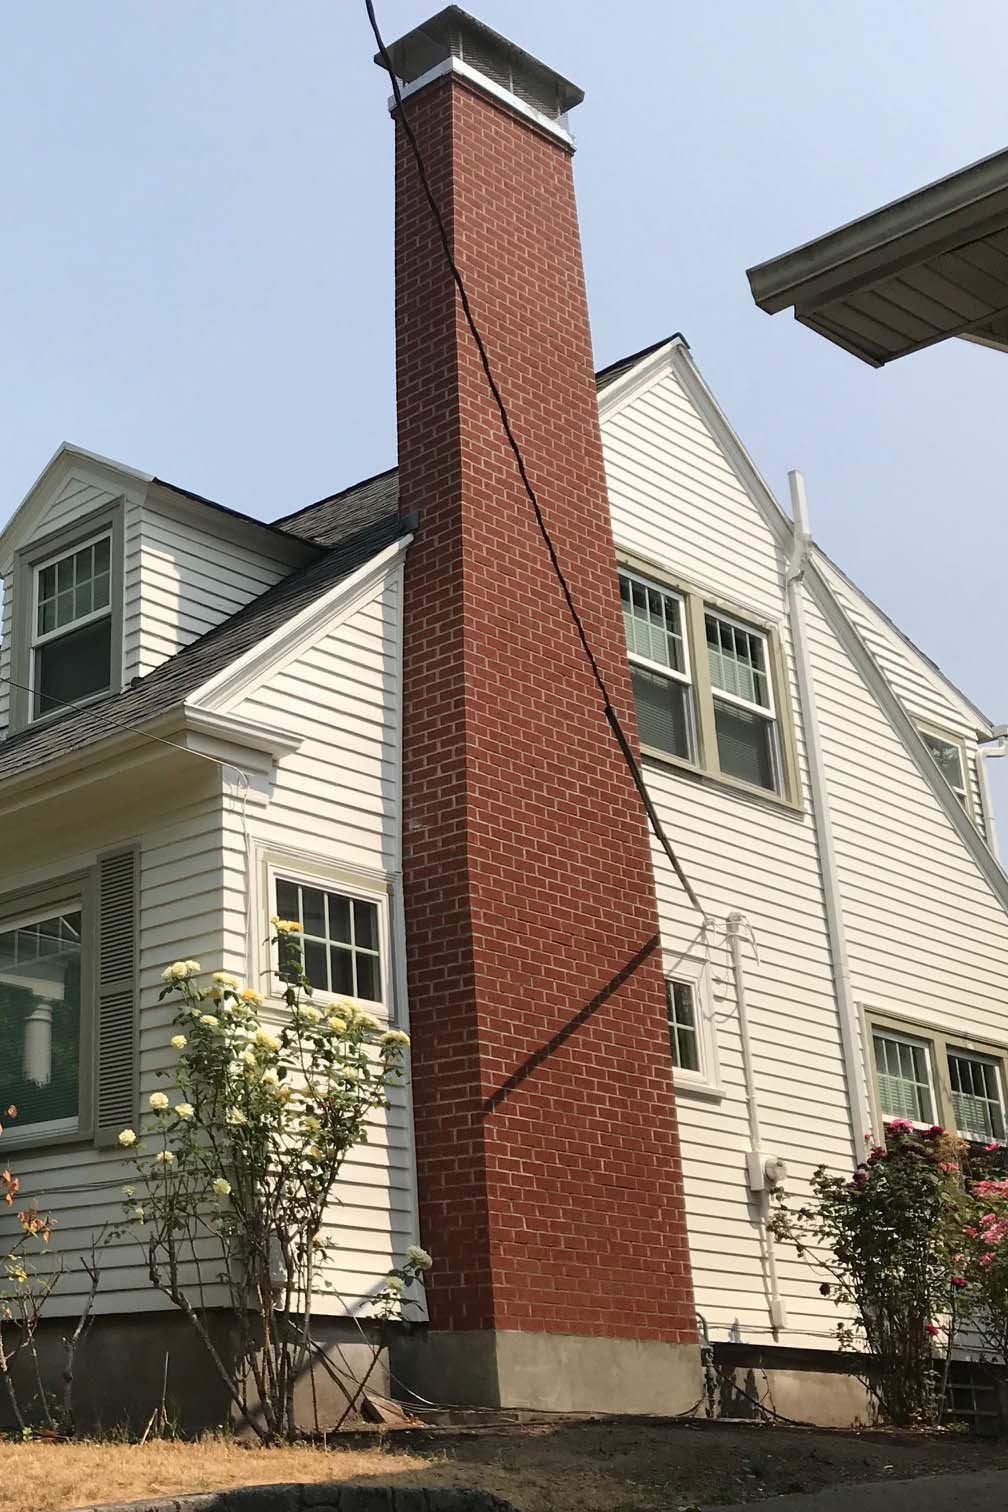 Portland Chimney Sweep Chimney Rebuild Chimney Cap Chimney Repair Tuck Point